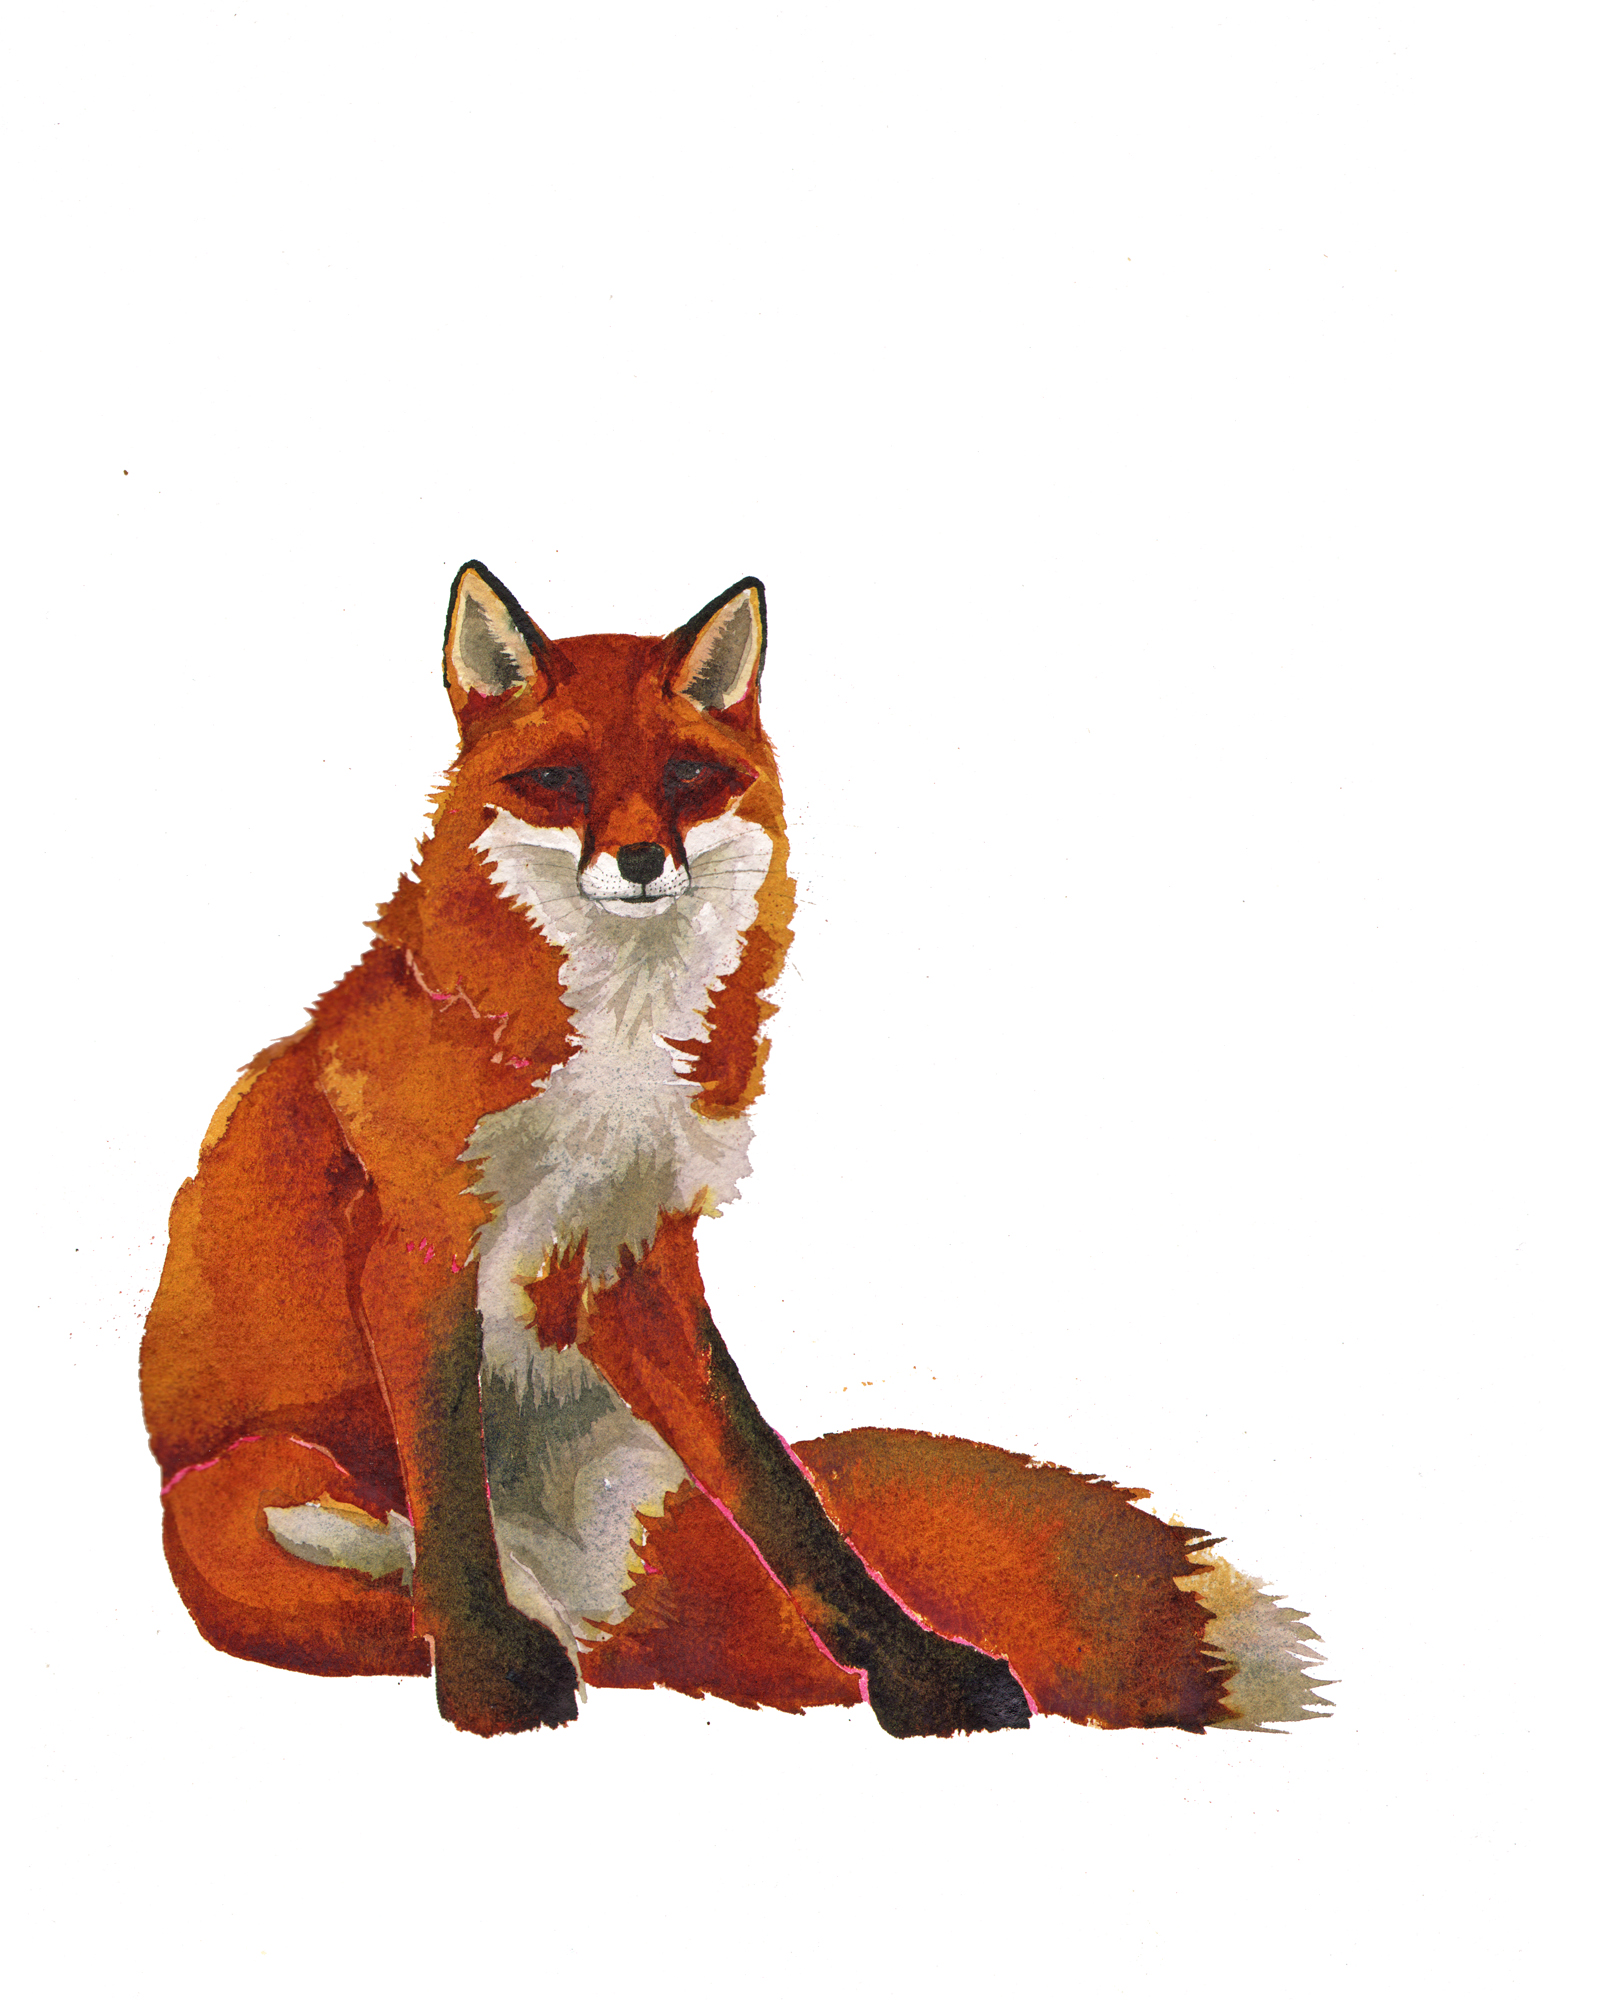 Red Fox, New image